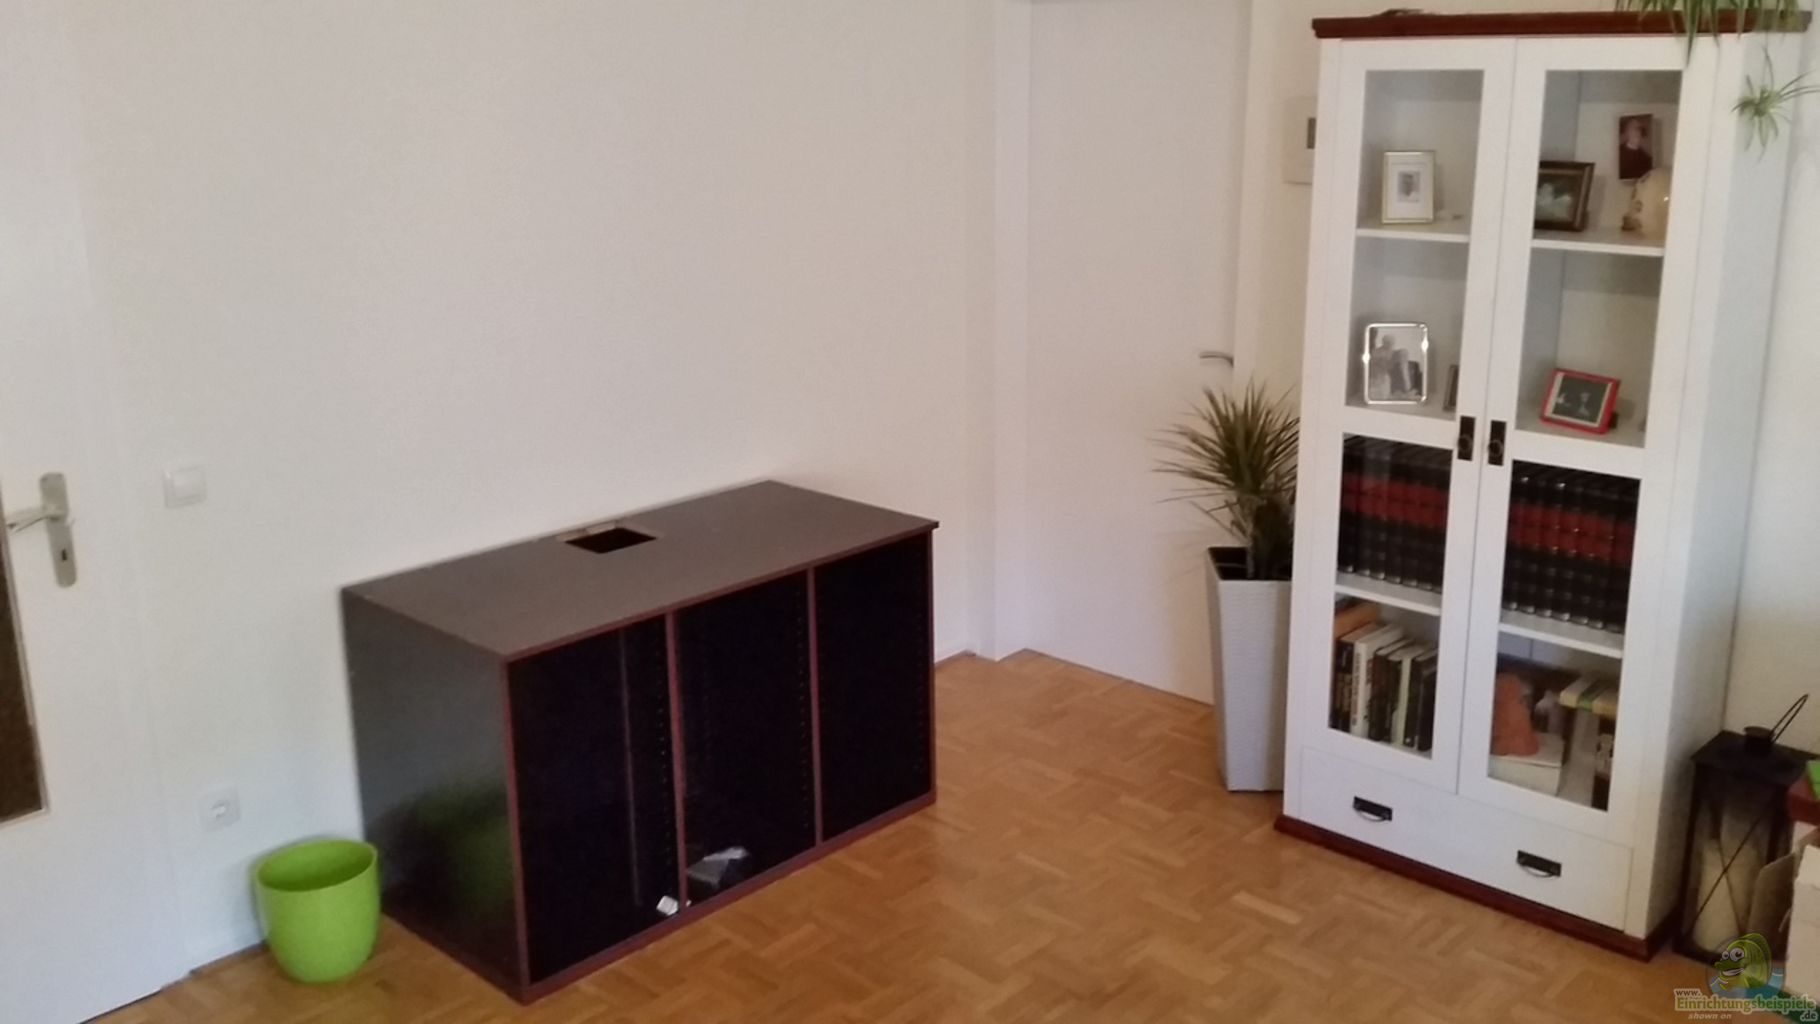 schrank korpus good renova nr comfort griff fr with. Black Bedroom Furniture Sets. Home Design Ideas